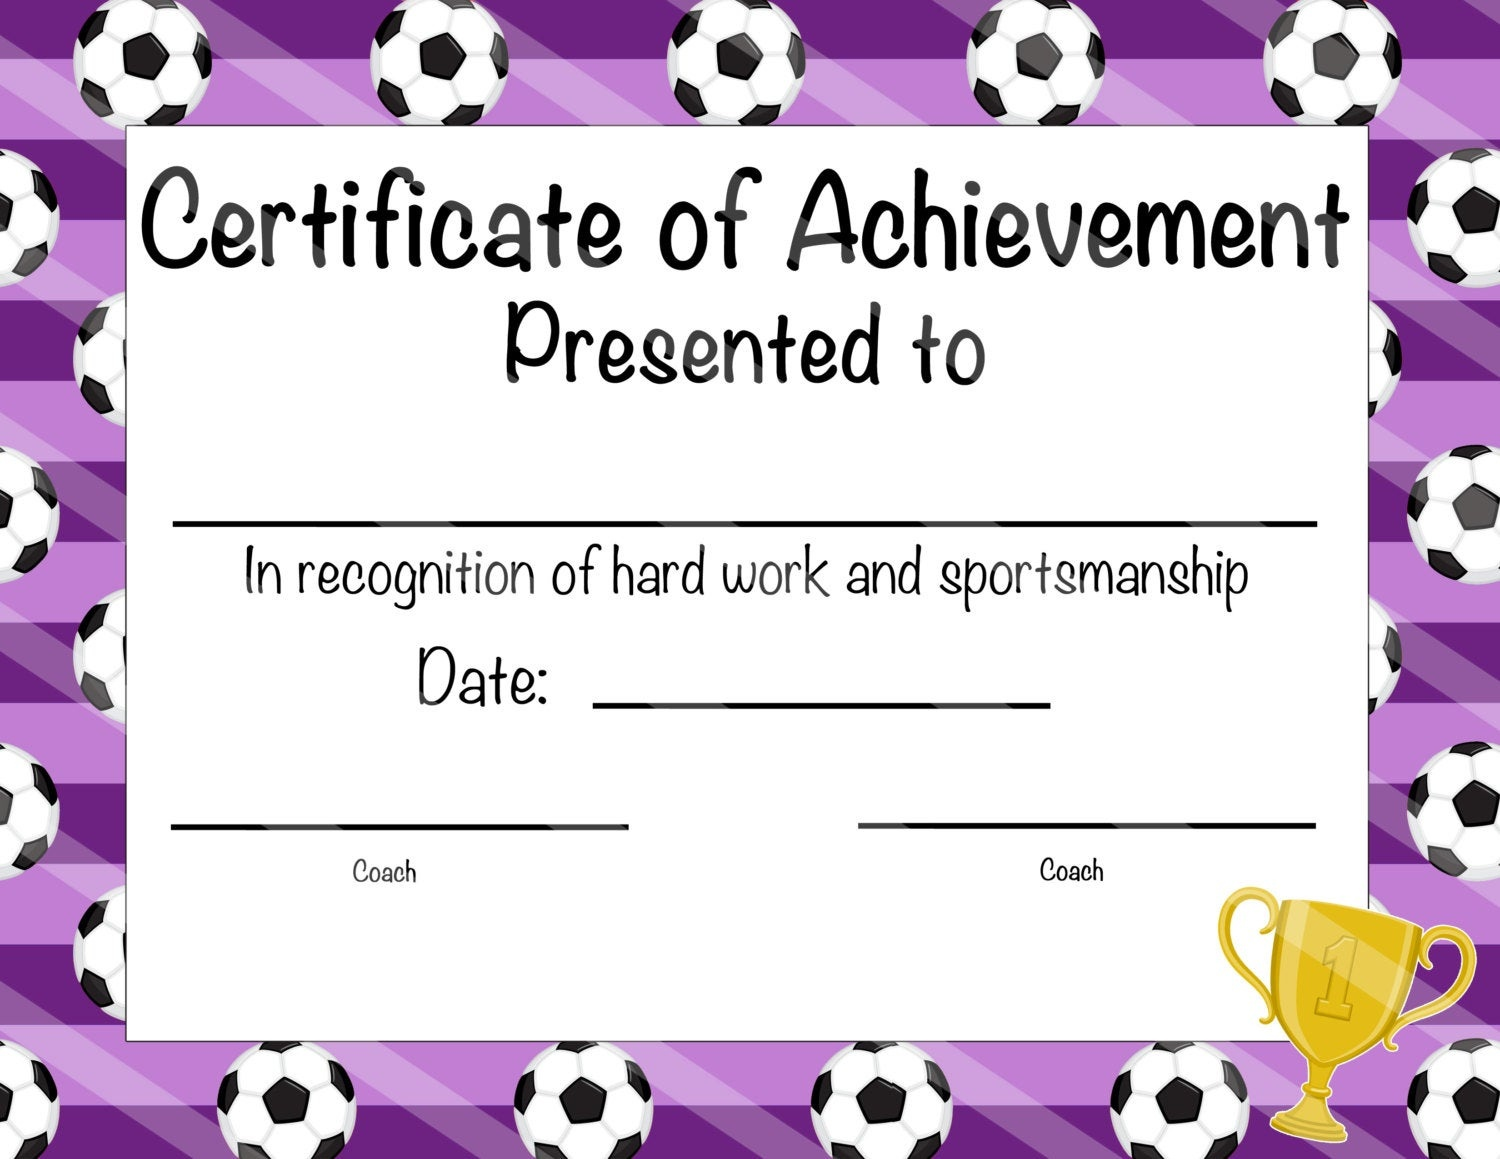 Soccer Certificate Of Participation Soccer Award Print At | Etsy - Free Soccer Award Certificates Printable